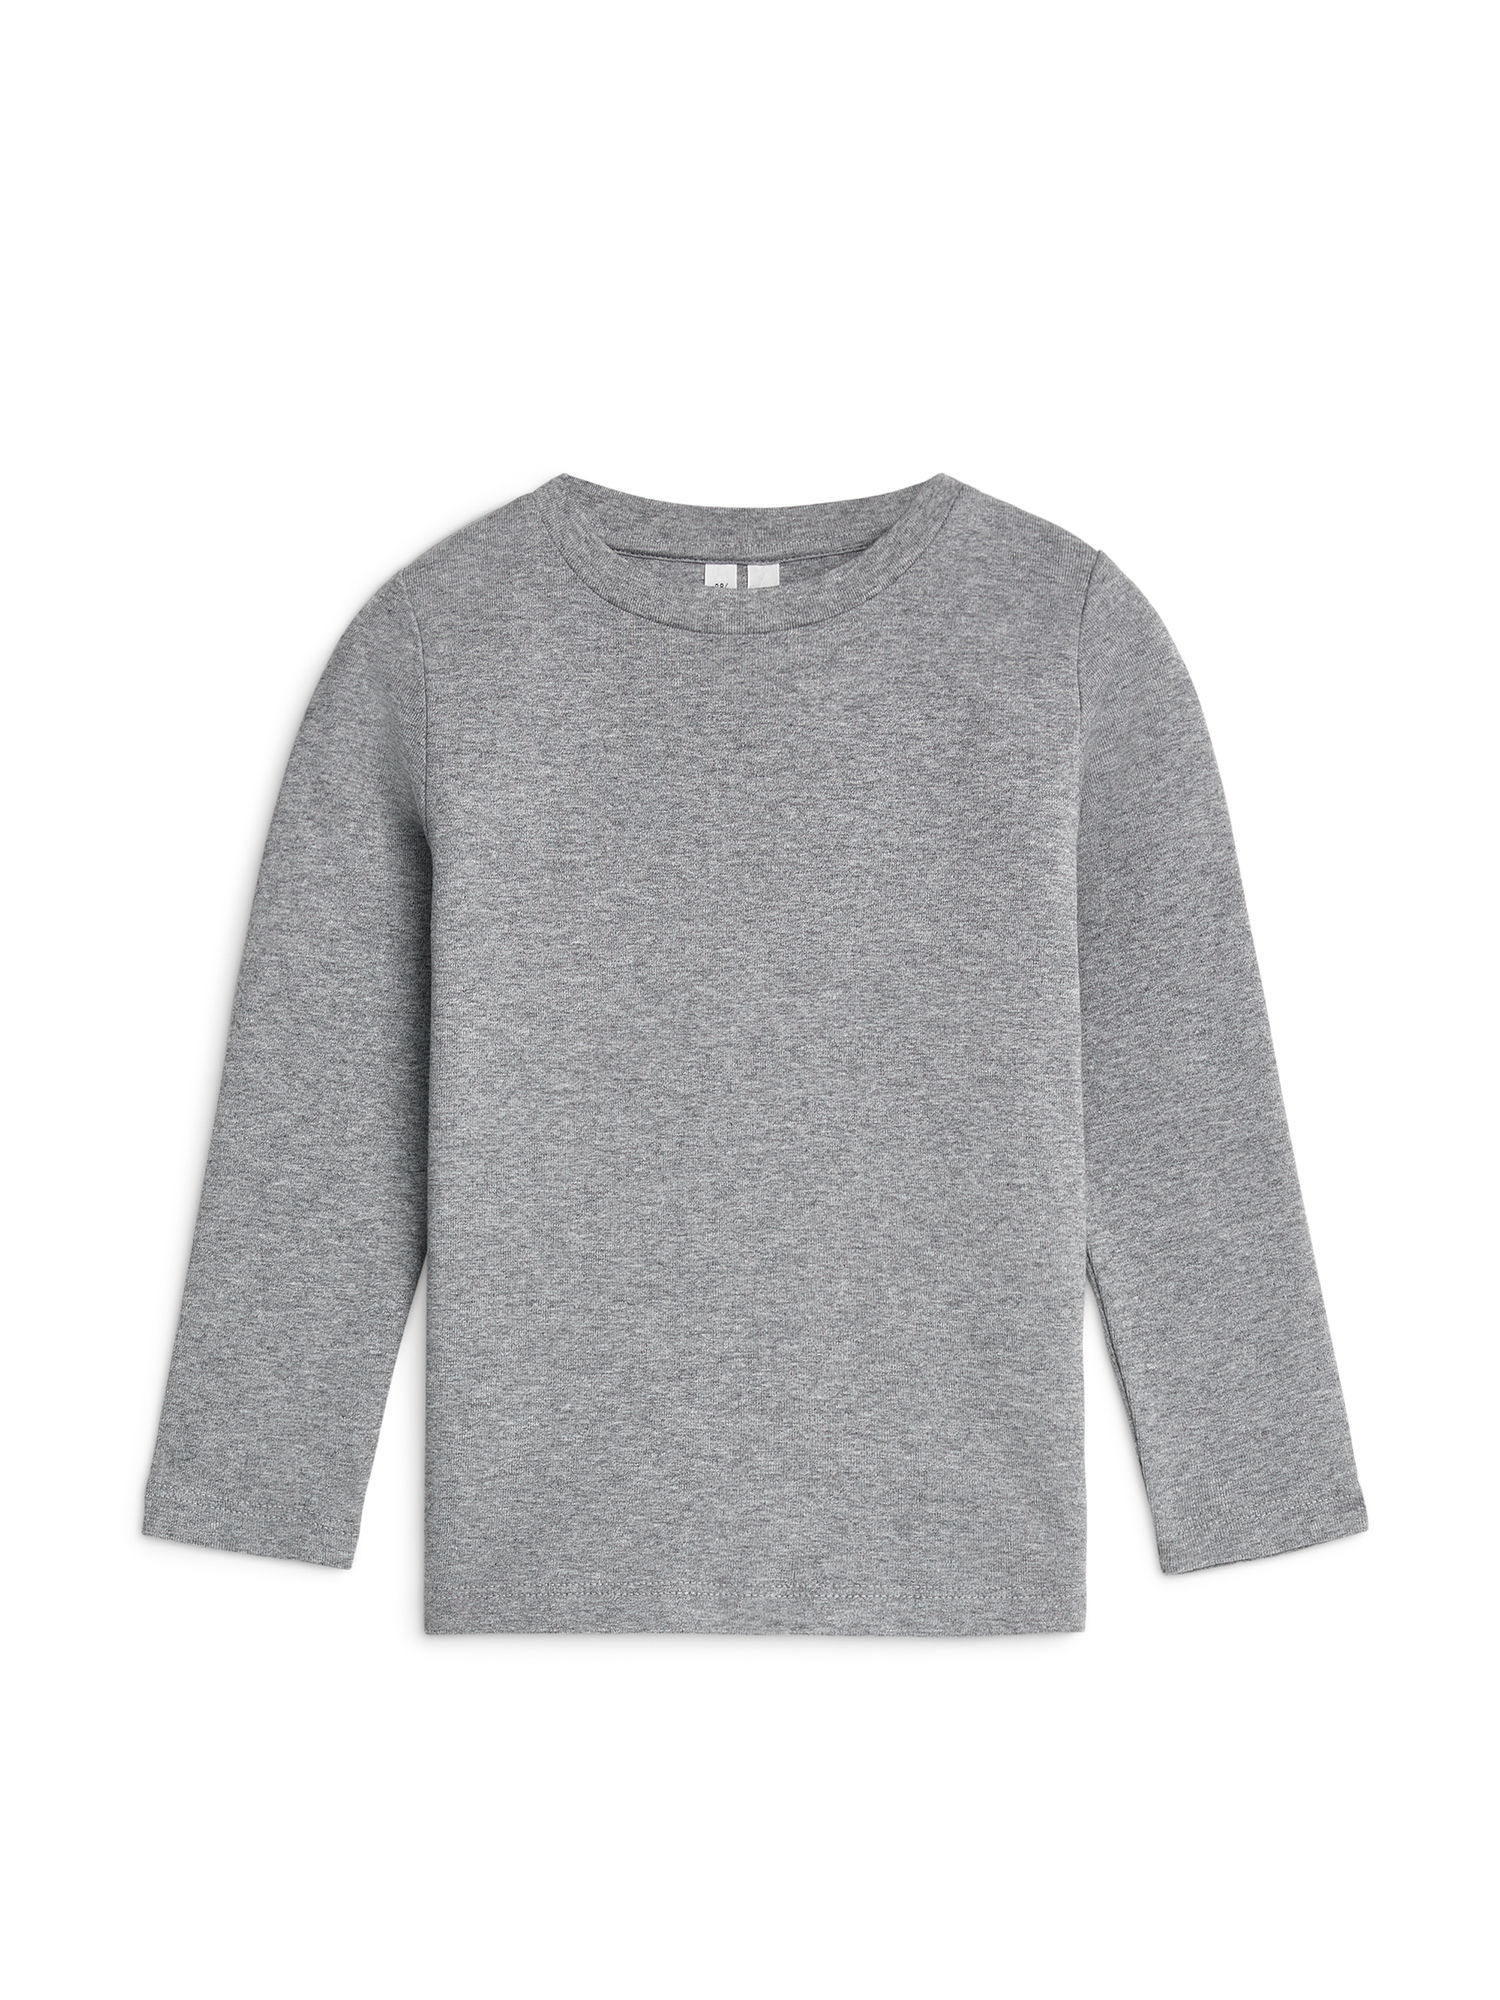 Fabric Swatch image of Arket long-sleeve t-shirt in grey